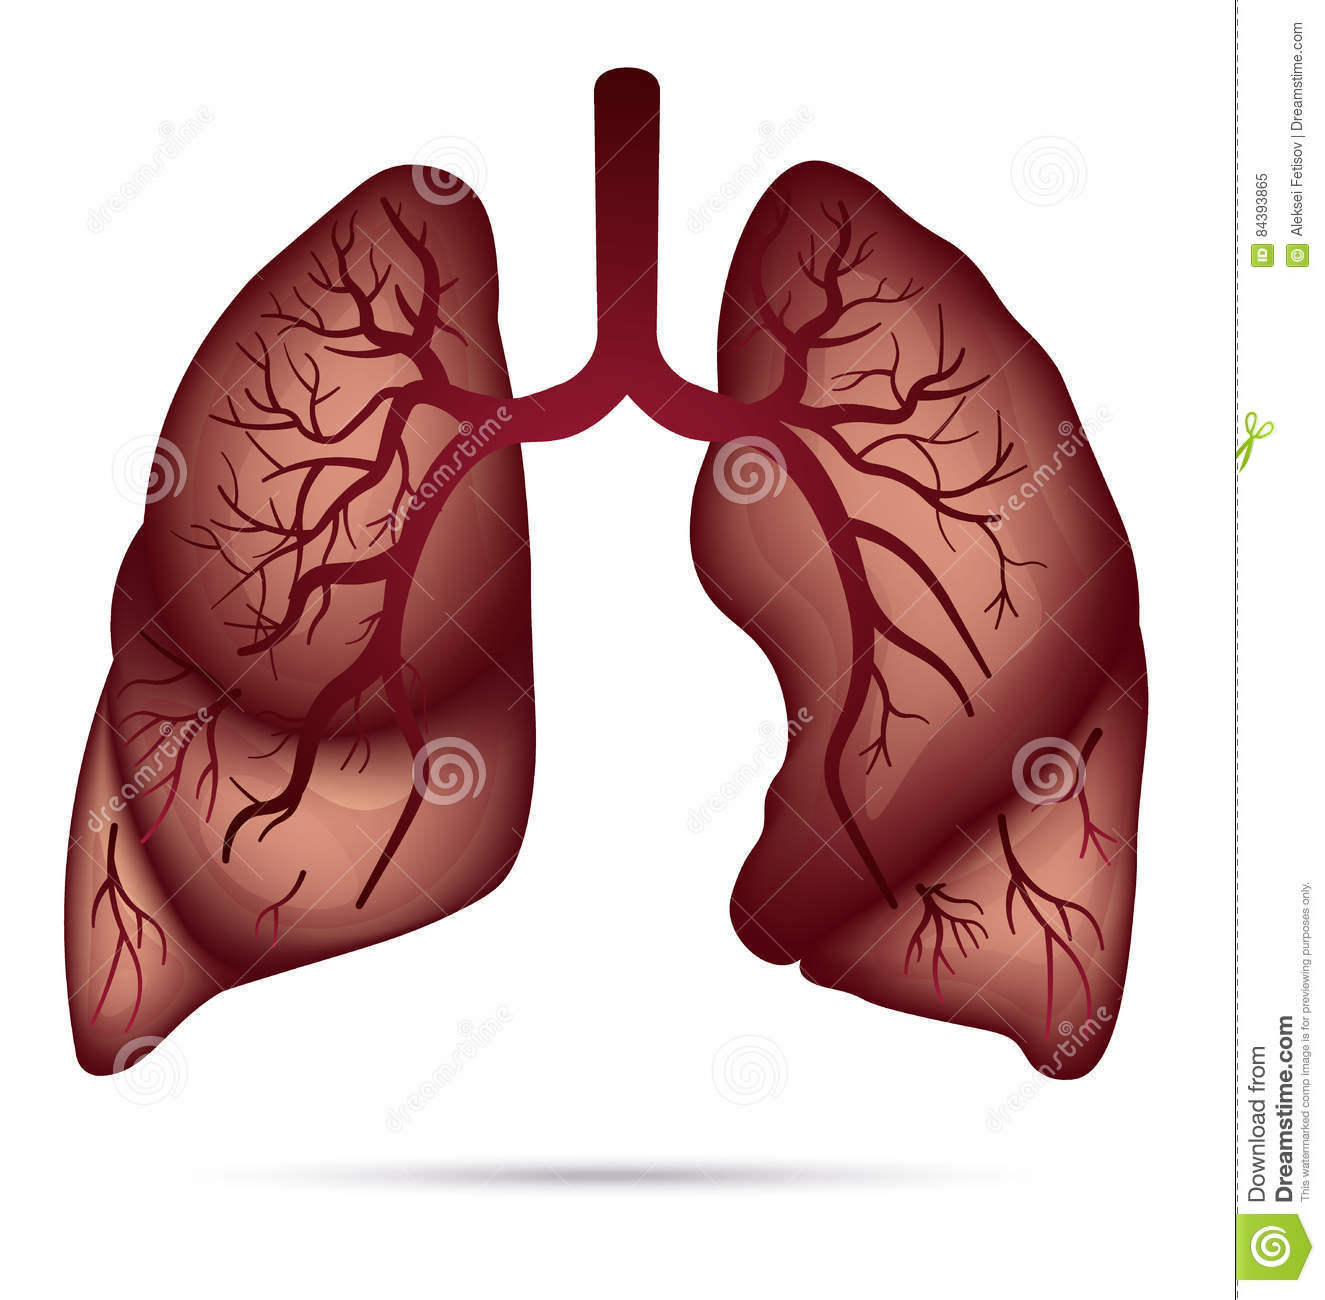 Human Lungs Anatomy For Asthma, Tuberculosis, Pneumonia. Lung Ca ...